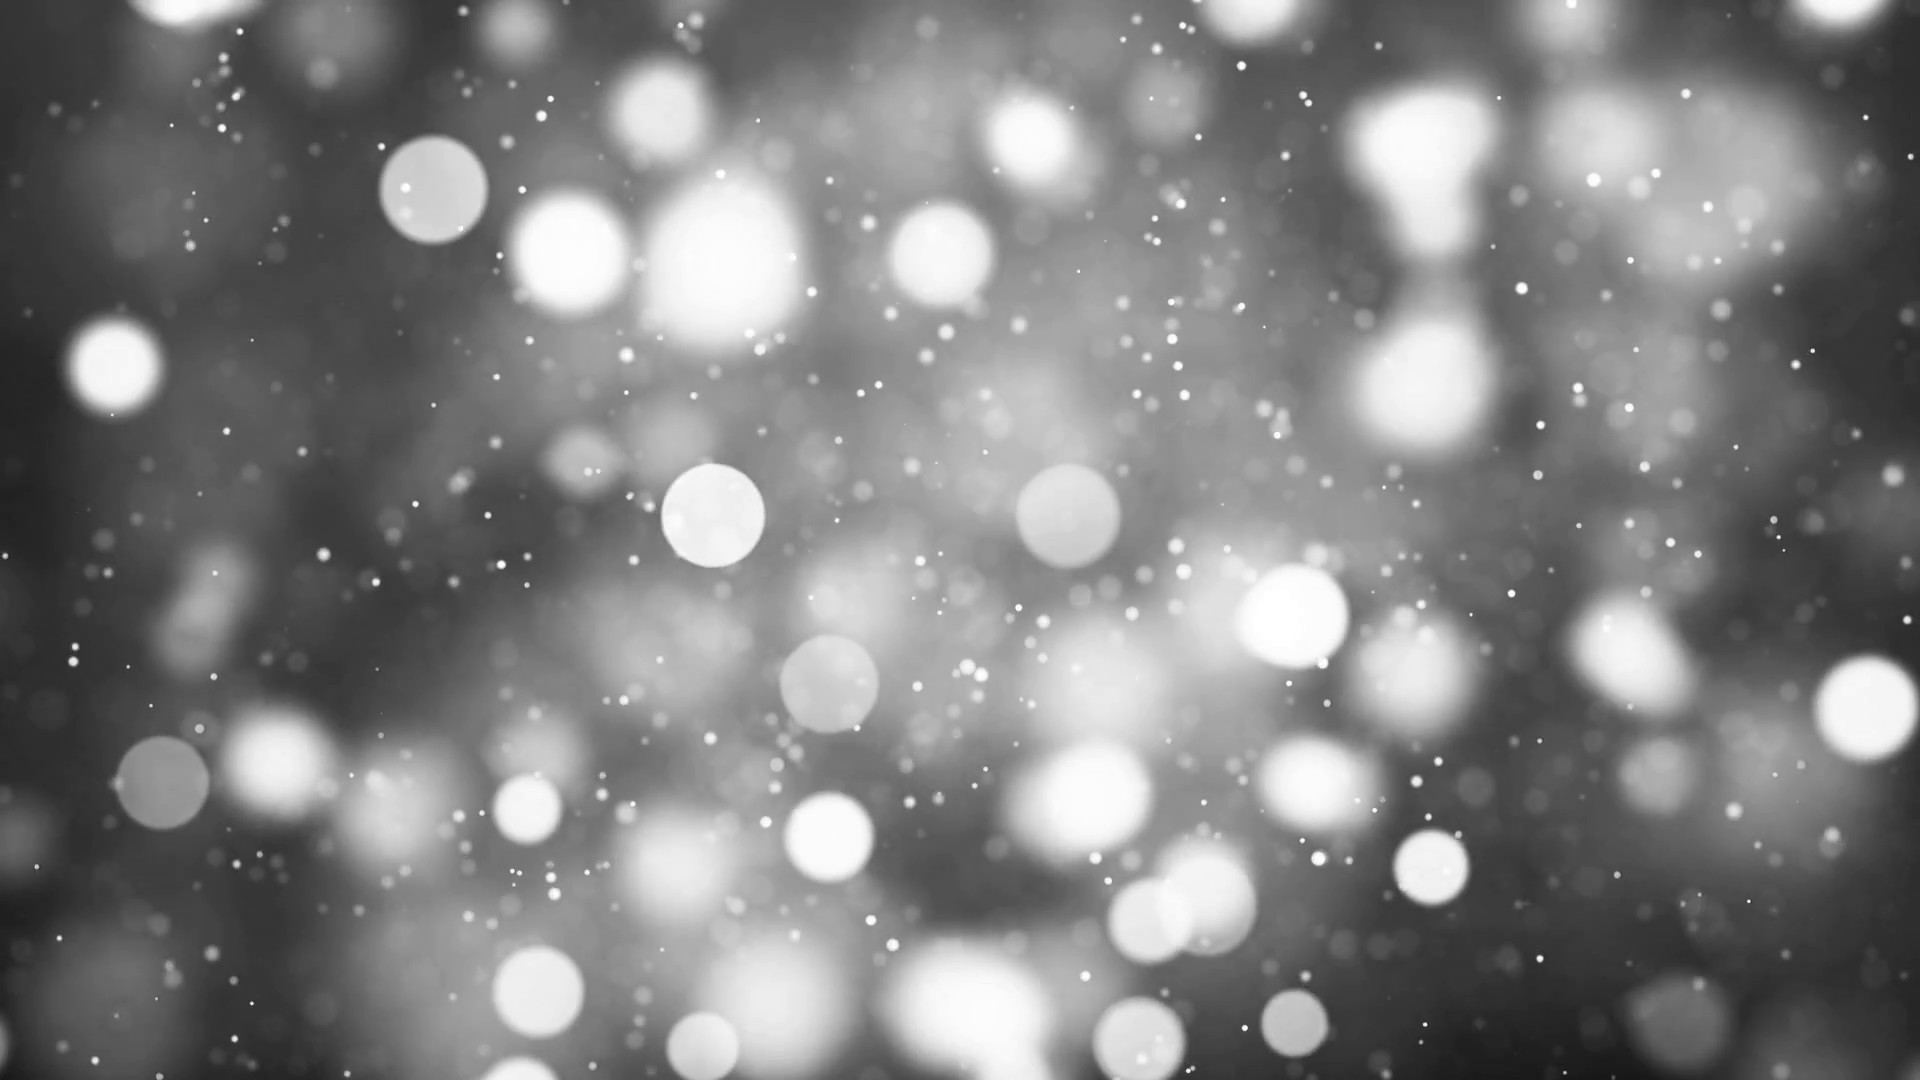 Black And White Abstract Backgrounds (57+ Images